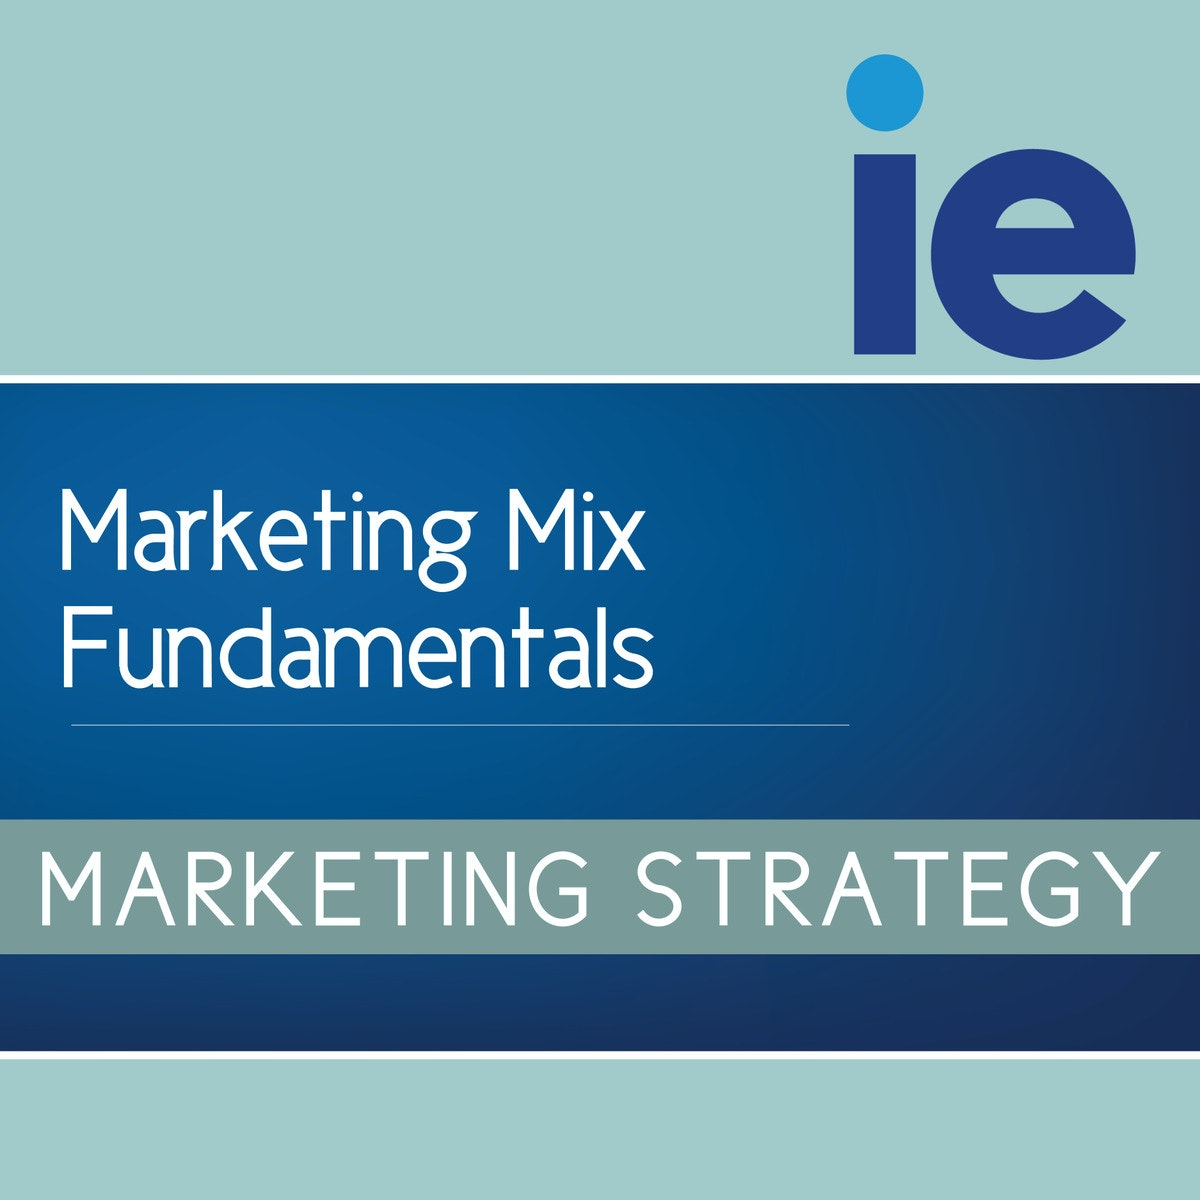 marketing fundamentals Marketing gets the word out about your products and services it promotes your company, grows your following, builds your reputation and generates sales but marketing can also feel overwhelming when you're new to it.